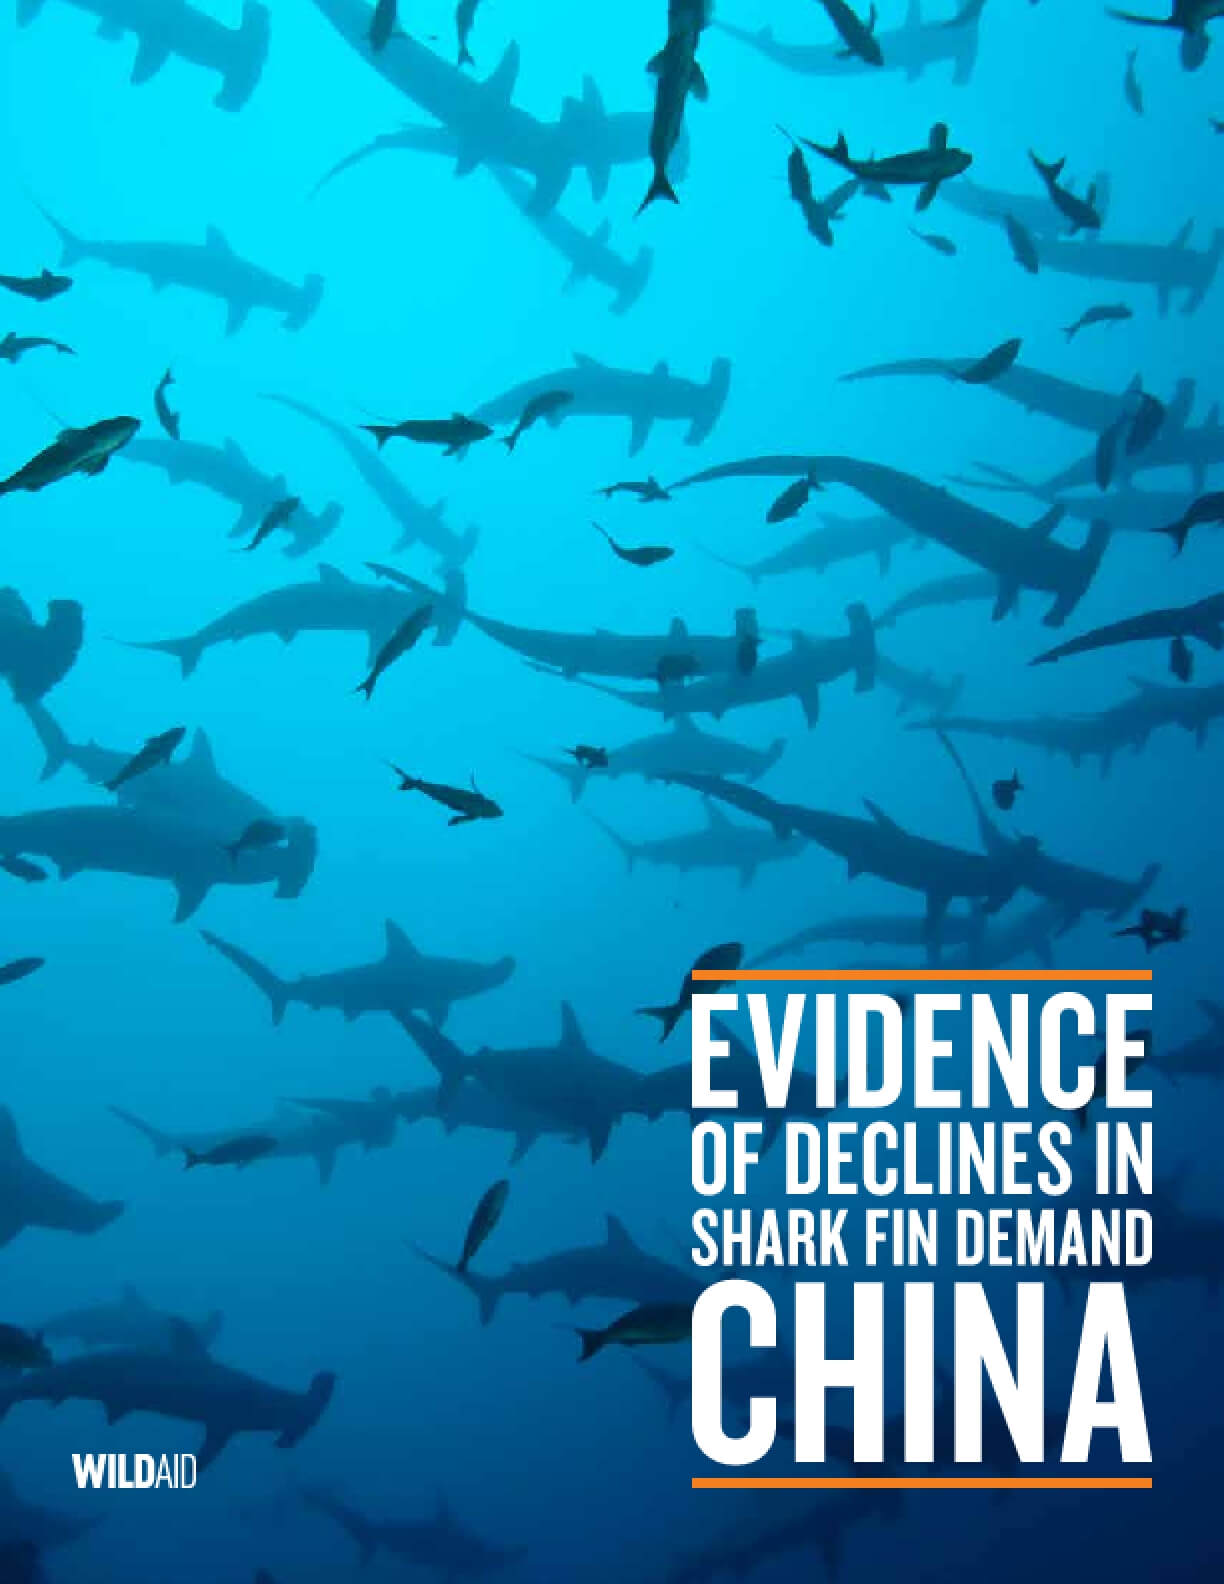 Evidence of Decline in Shark Fin Demand: China